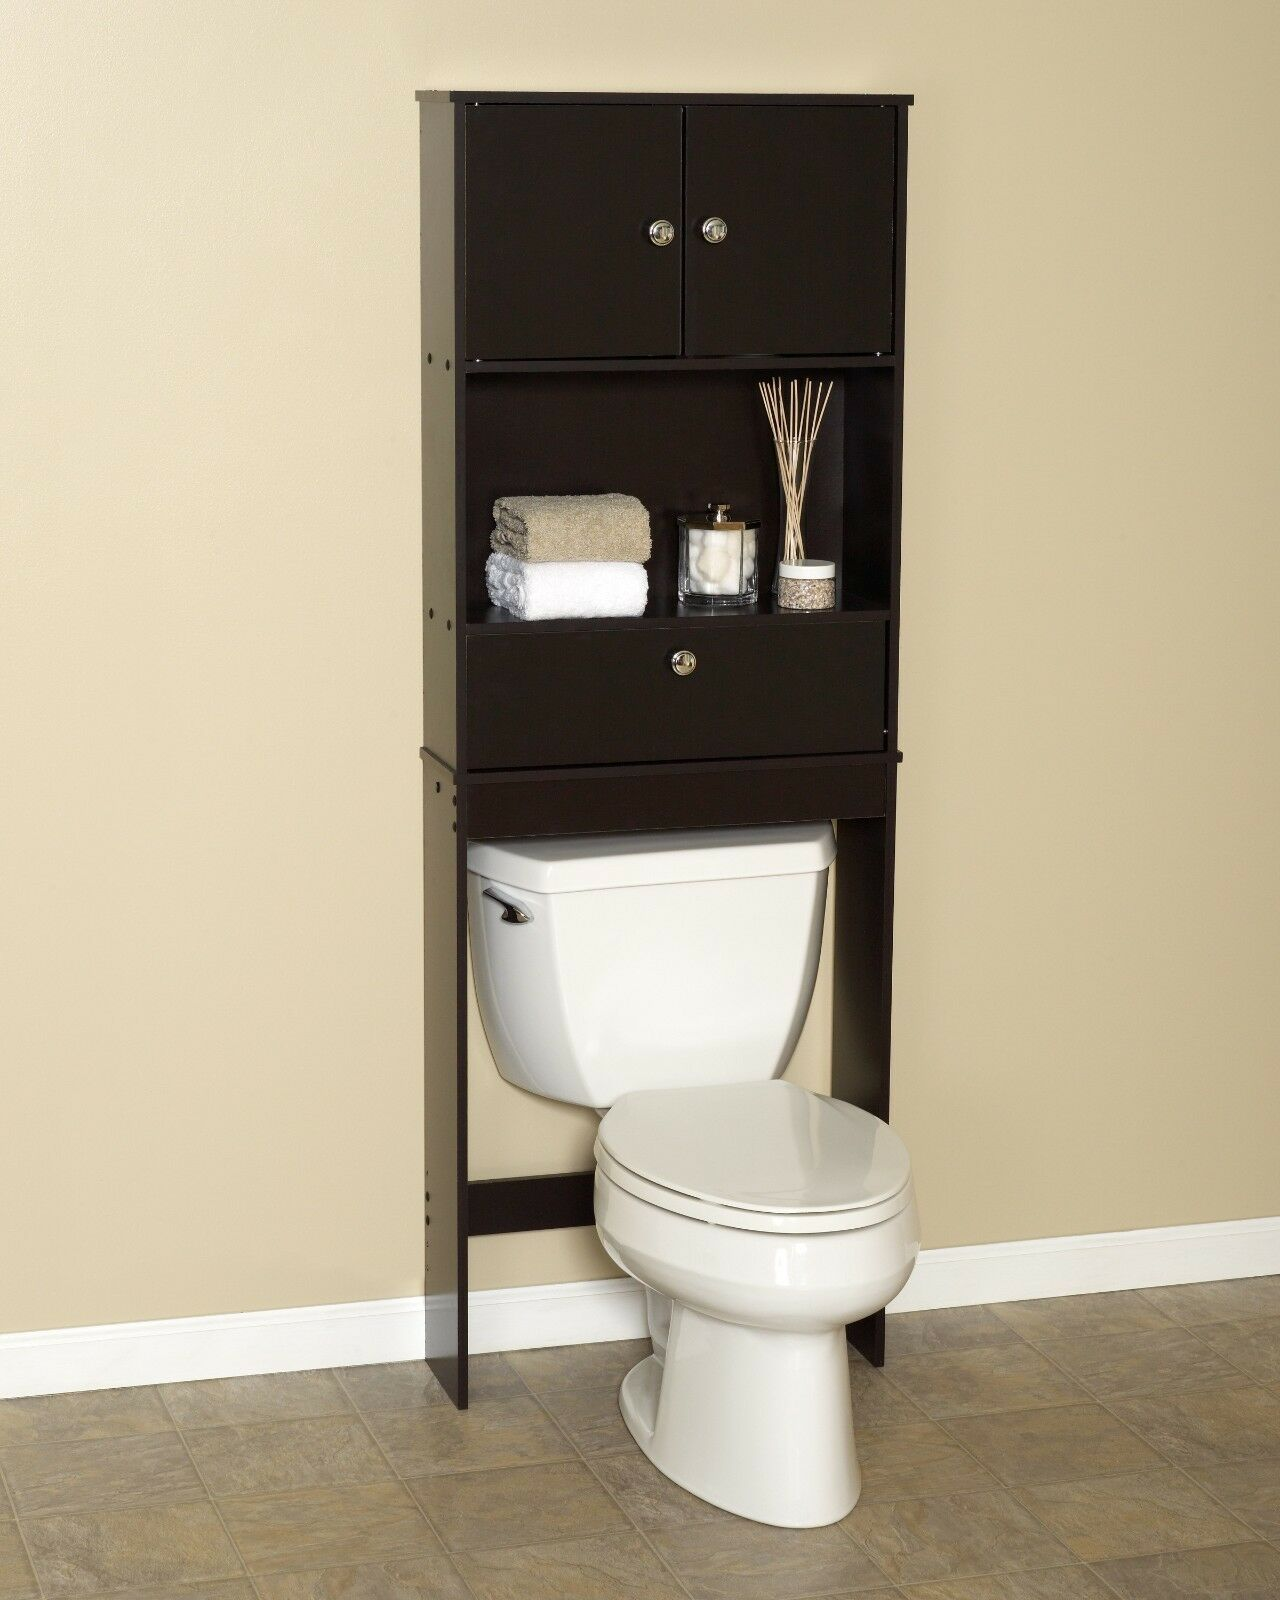 zenith drop door spacesaver cabinet over the toilet bathroom space saver. Black Bedroom Furniture Sets. Home Design Ideas